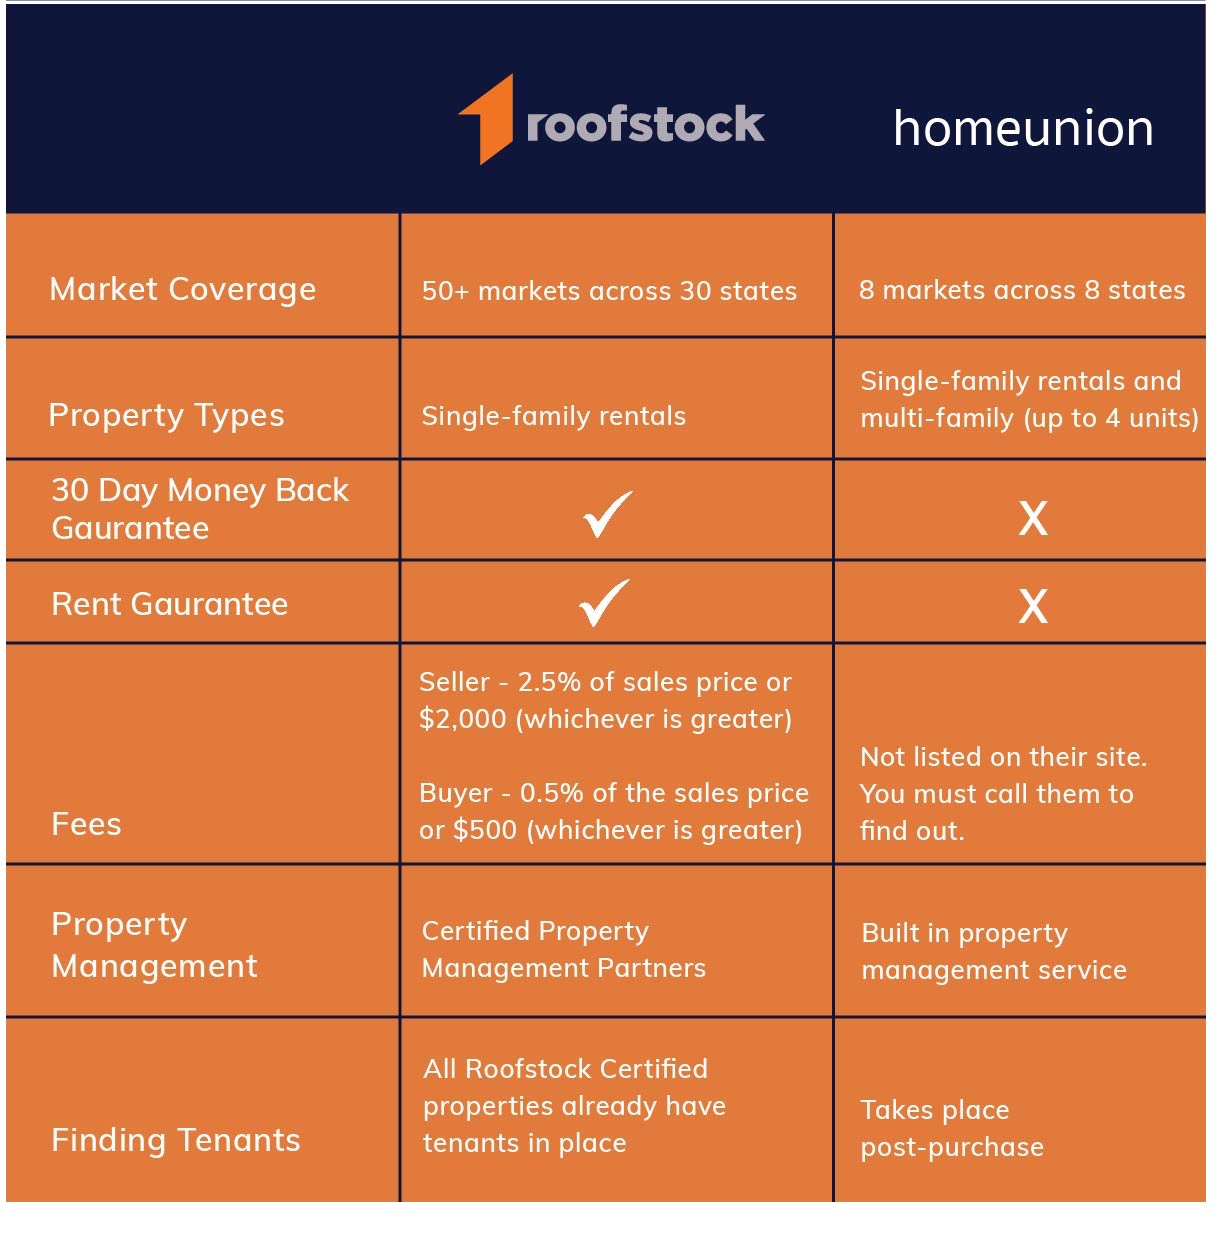 roofstock vs homeunion chart